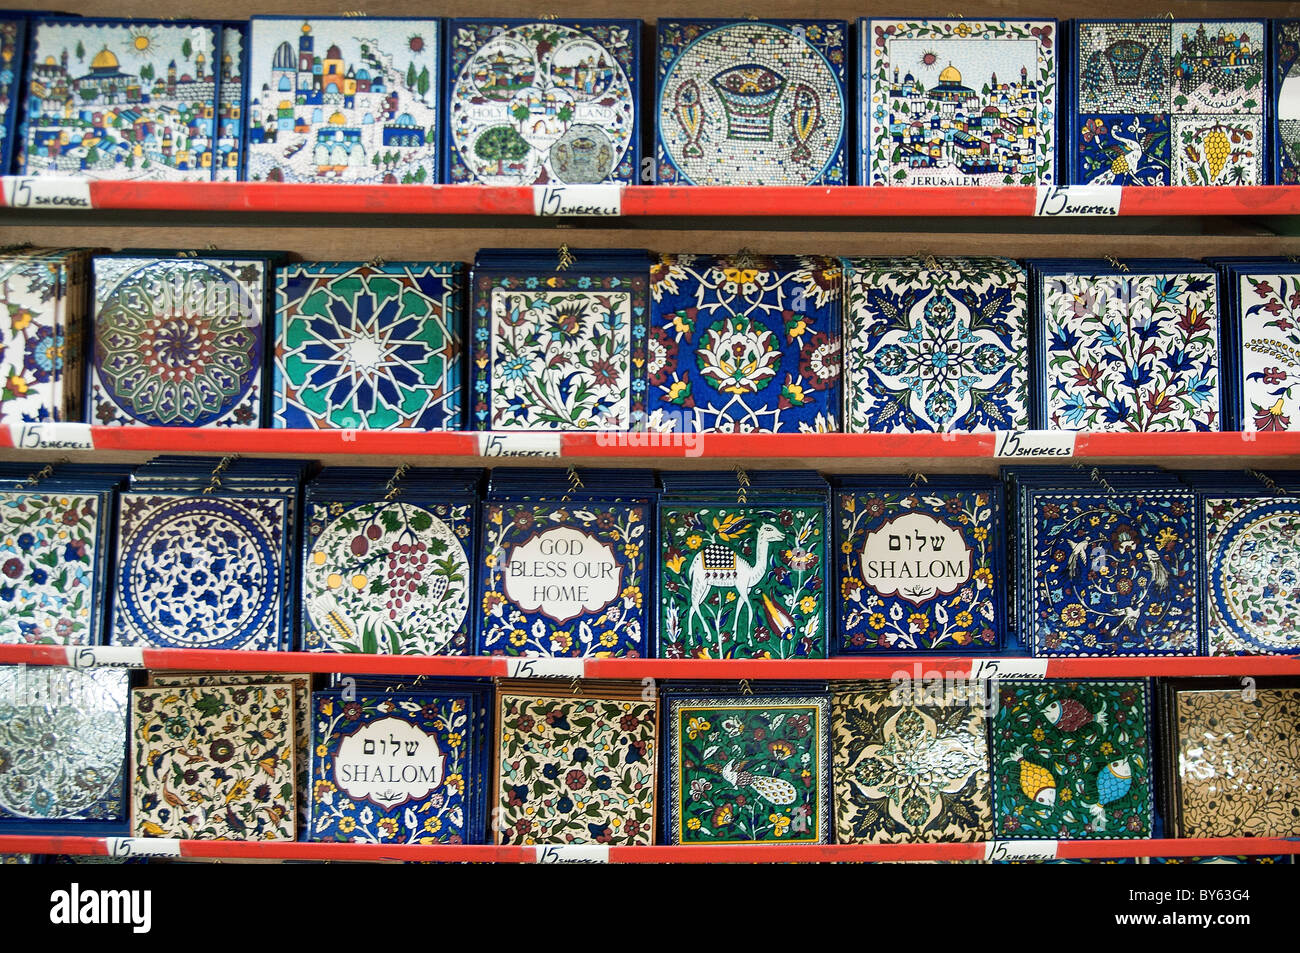 Israel jerusalem old city the market decorated ceramic tiles on israel jerusalem old city the market decorated ceramic tiles on sale dailygadgetfo Image collections